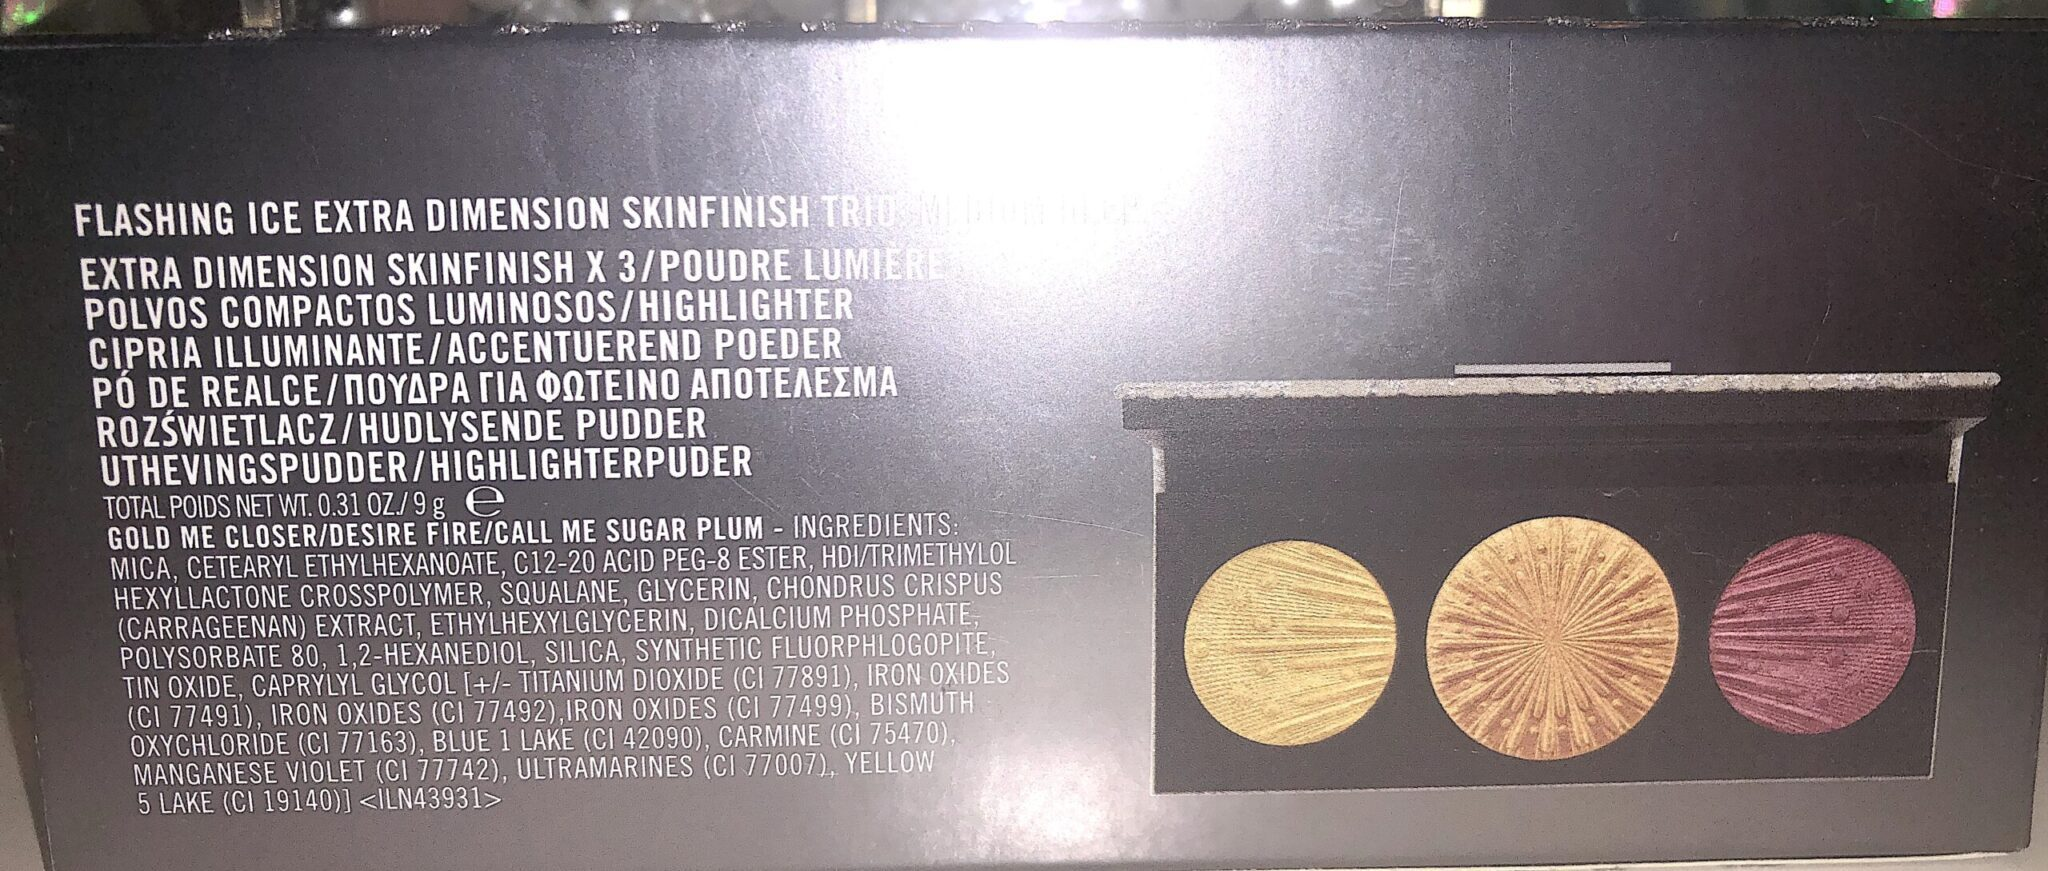 THE INGREDIENTS FOR FLASHING ICE EXTRA DIMENSION SKINFINISH TRIO MEDIUM DEEP